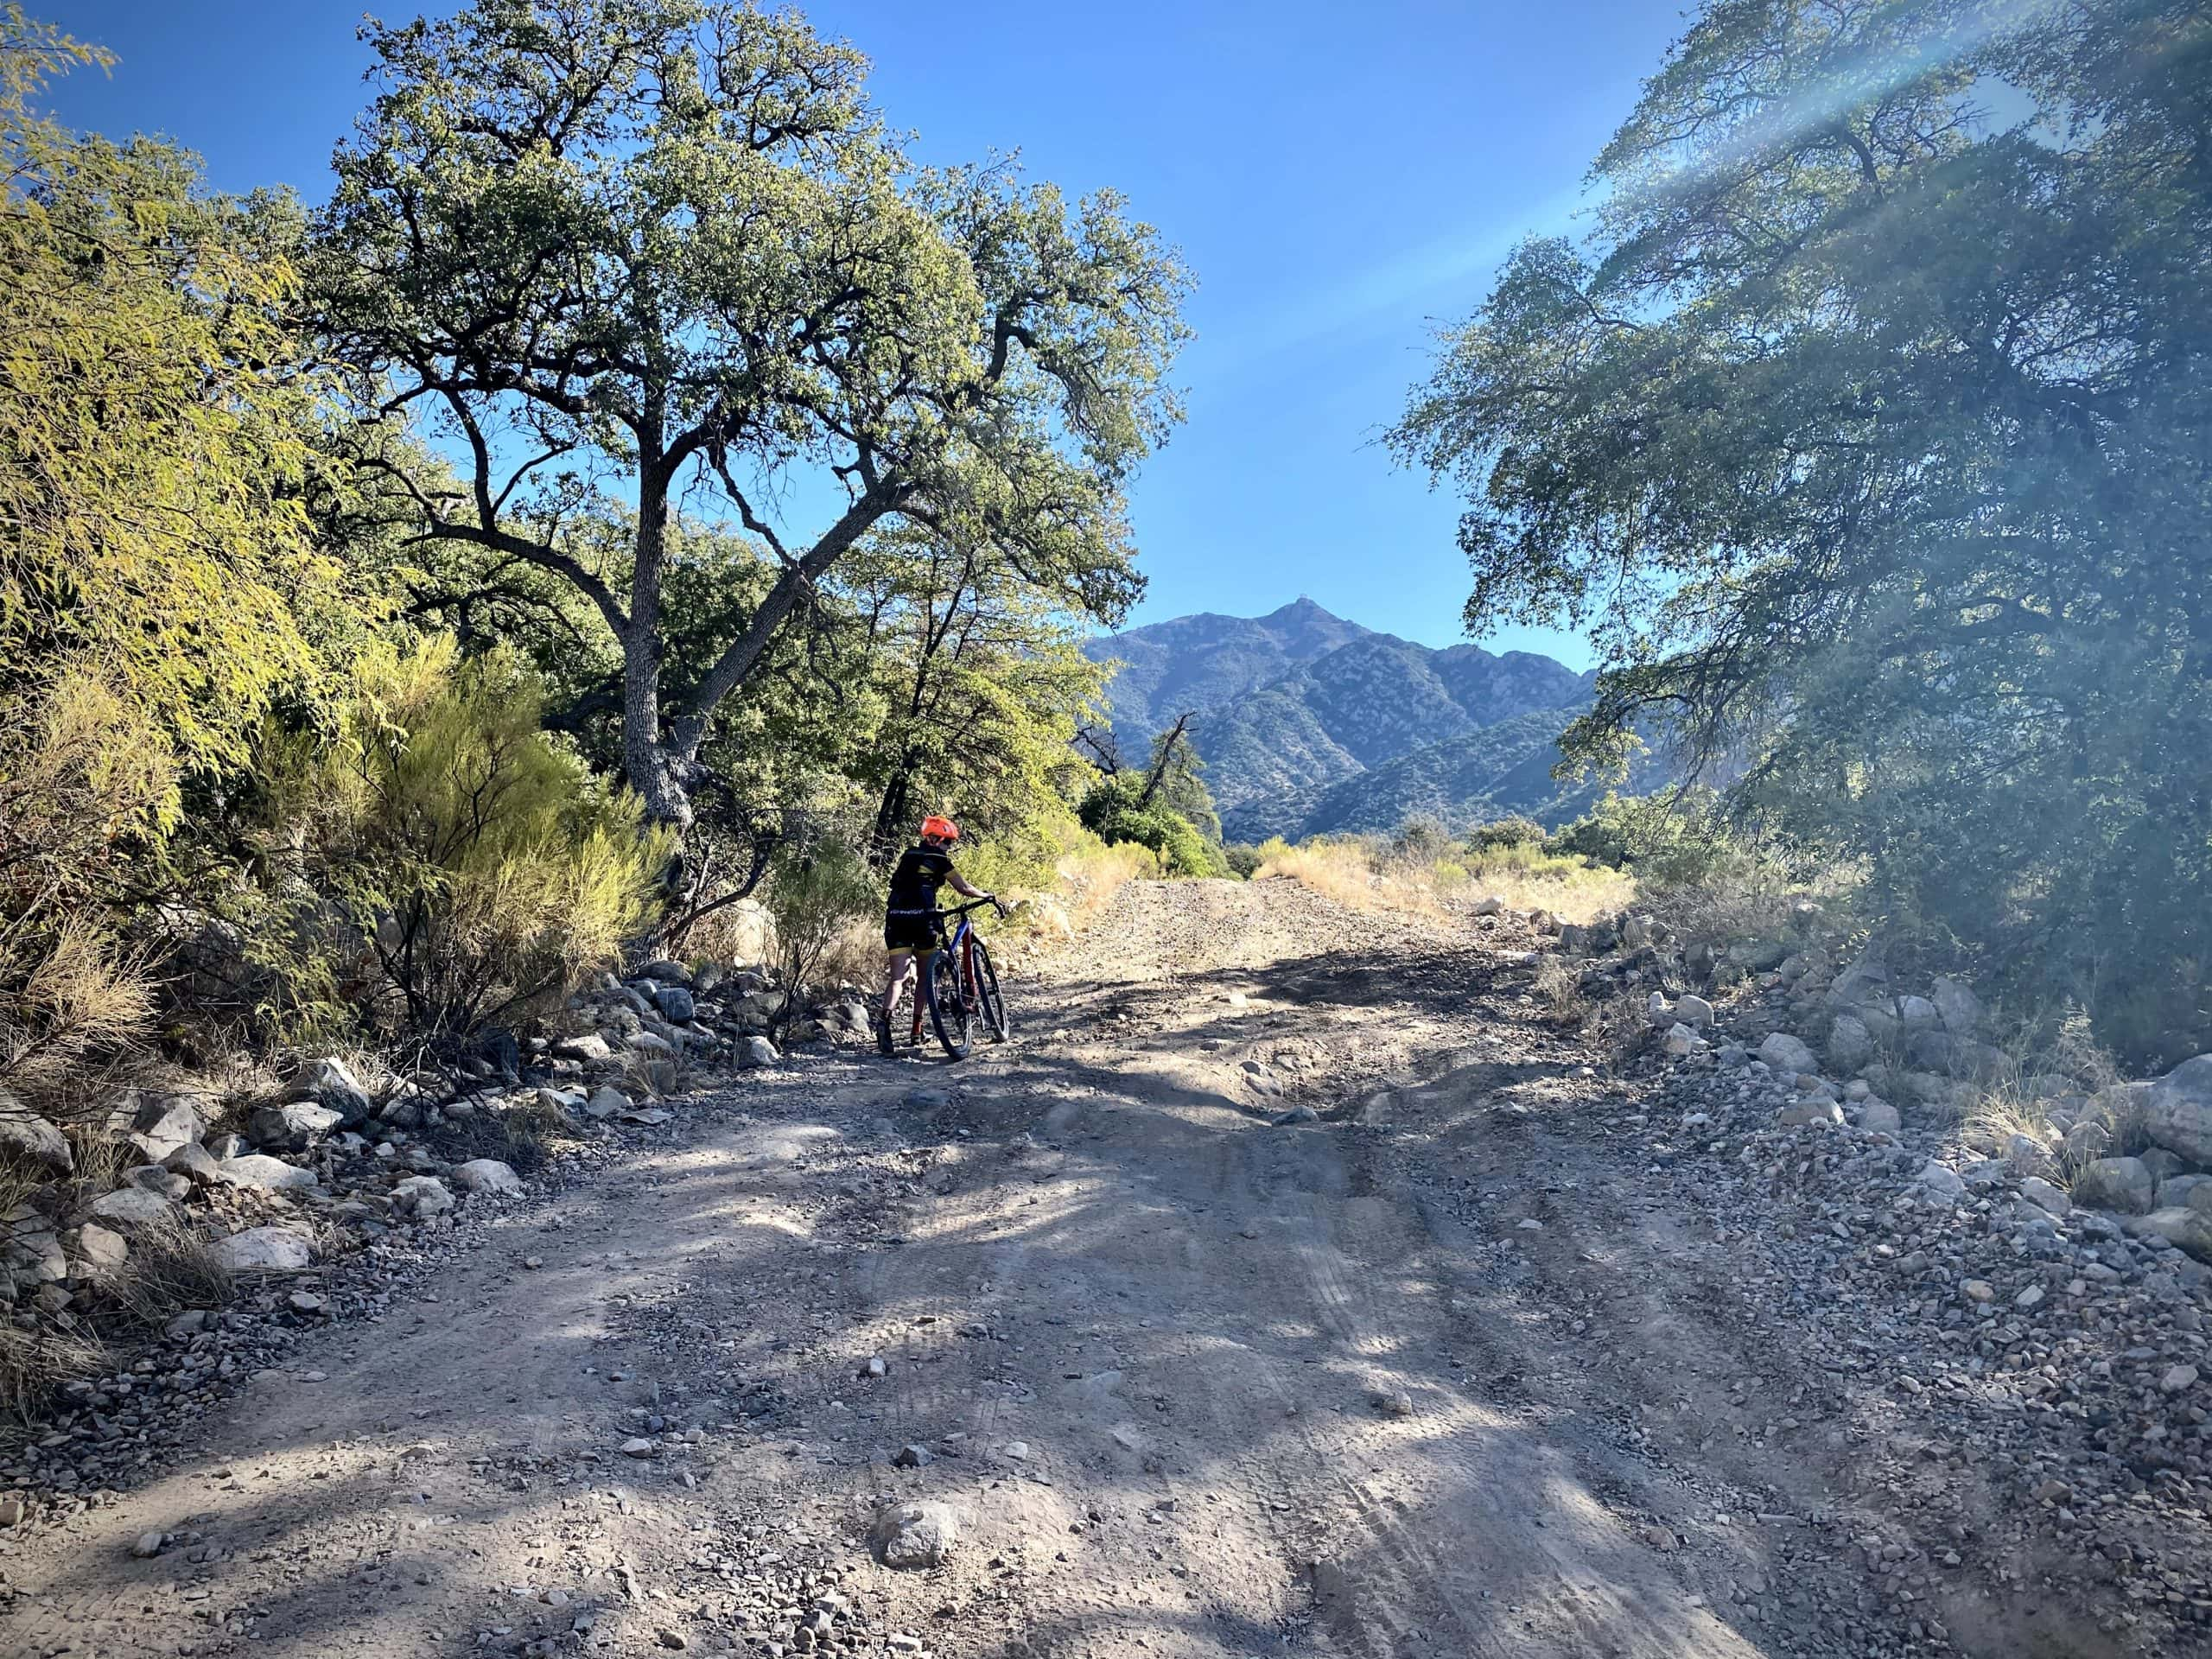 Gravel cyclist walking a section of the rough and rutted gravel road leading to the radio towers.